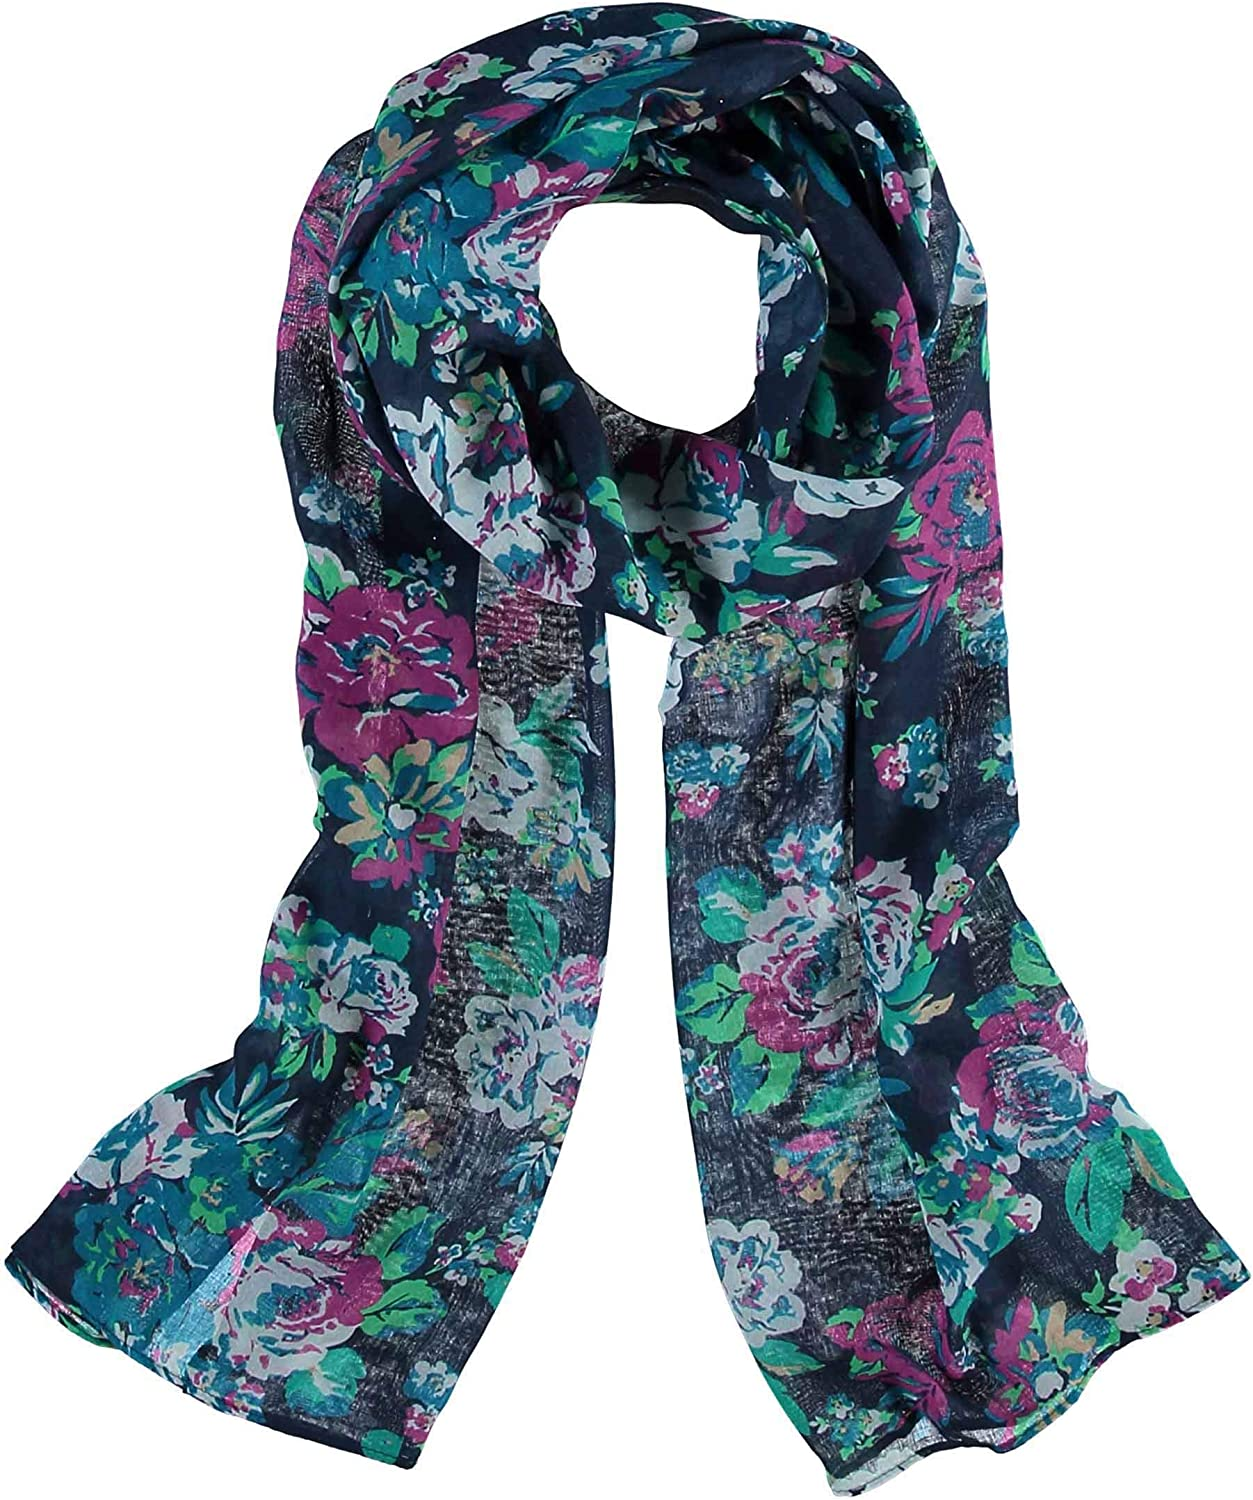 Accessories First Vintage Floral Scarf- Fashionable Womens Polyester Oversized Scarf Wrap